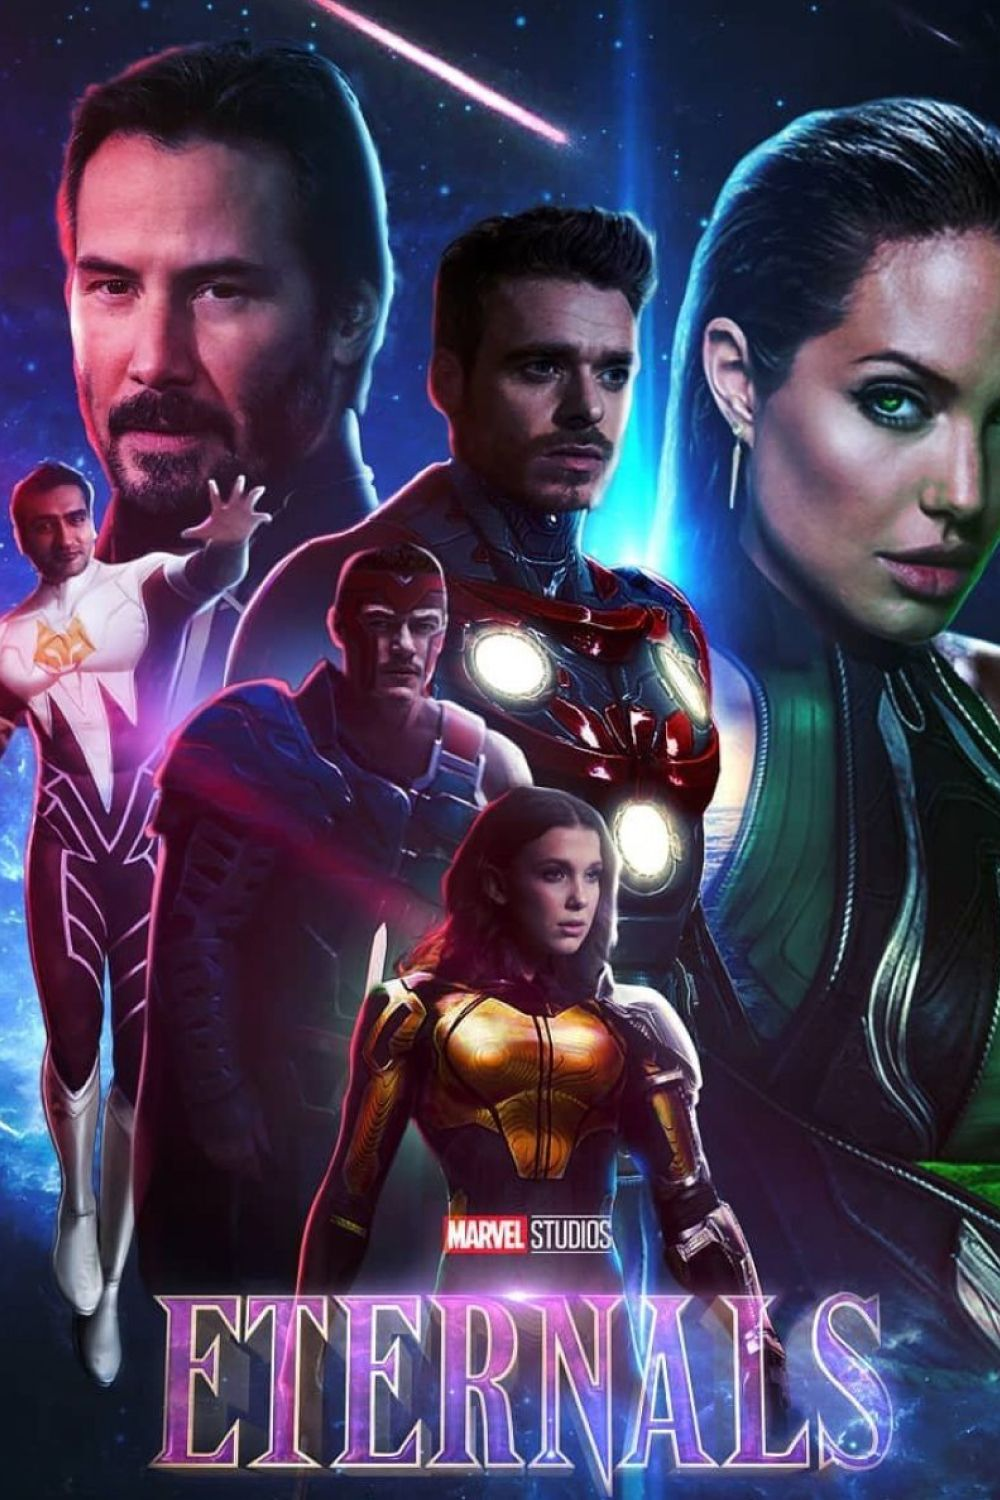 The Eternals Upcoming Marvel Movies Latest Hollywood Movies Marvel Cinematic